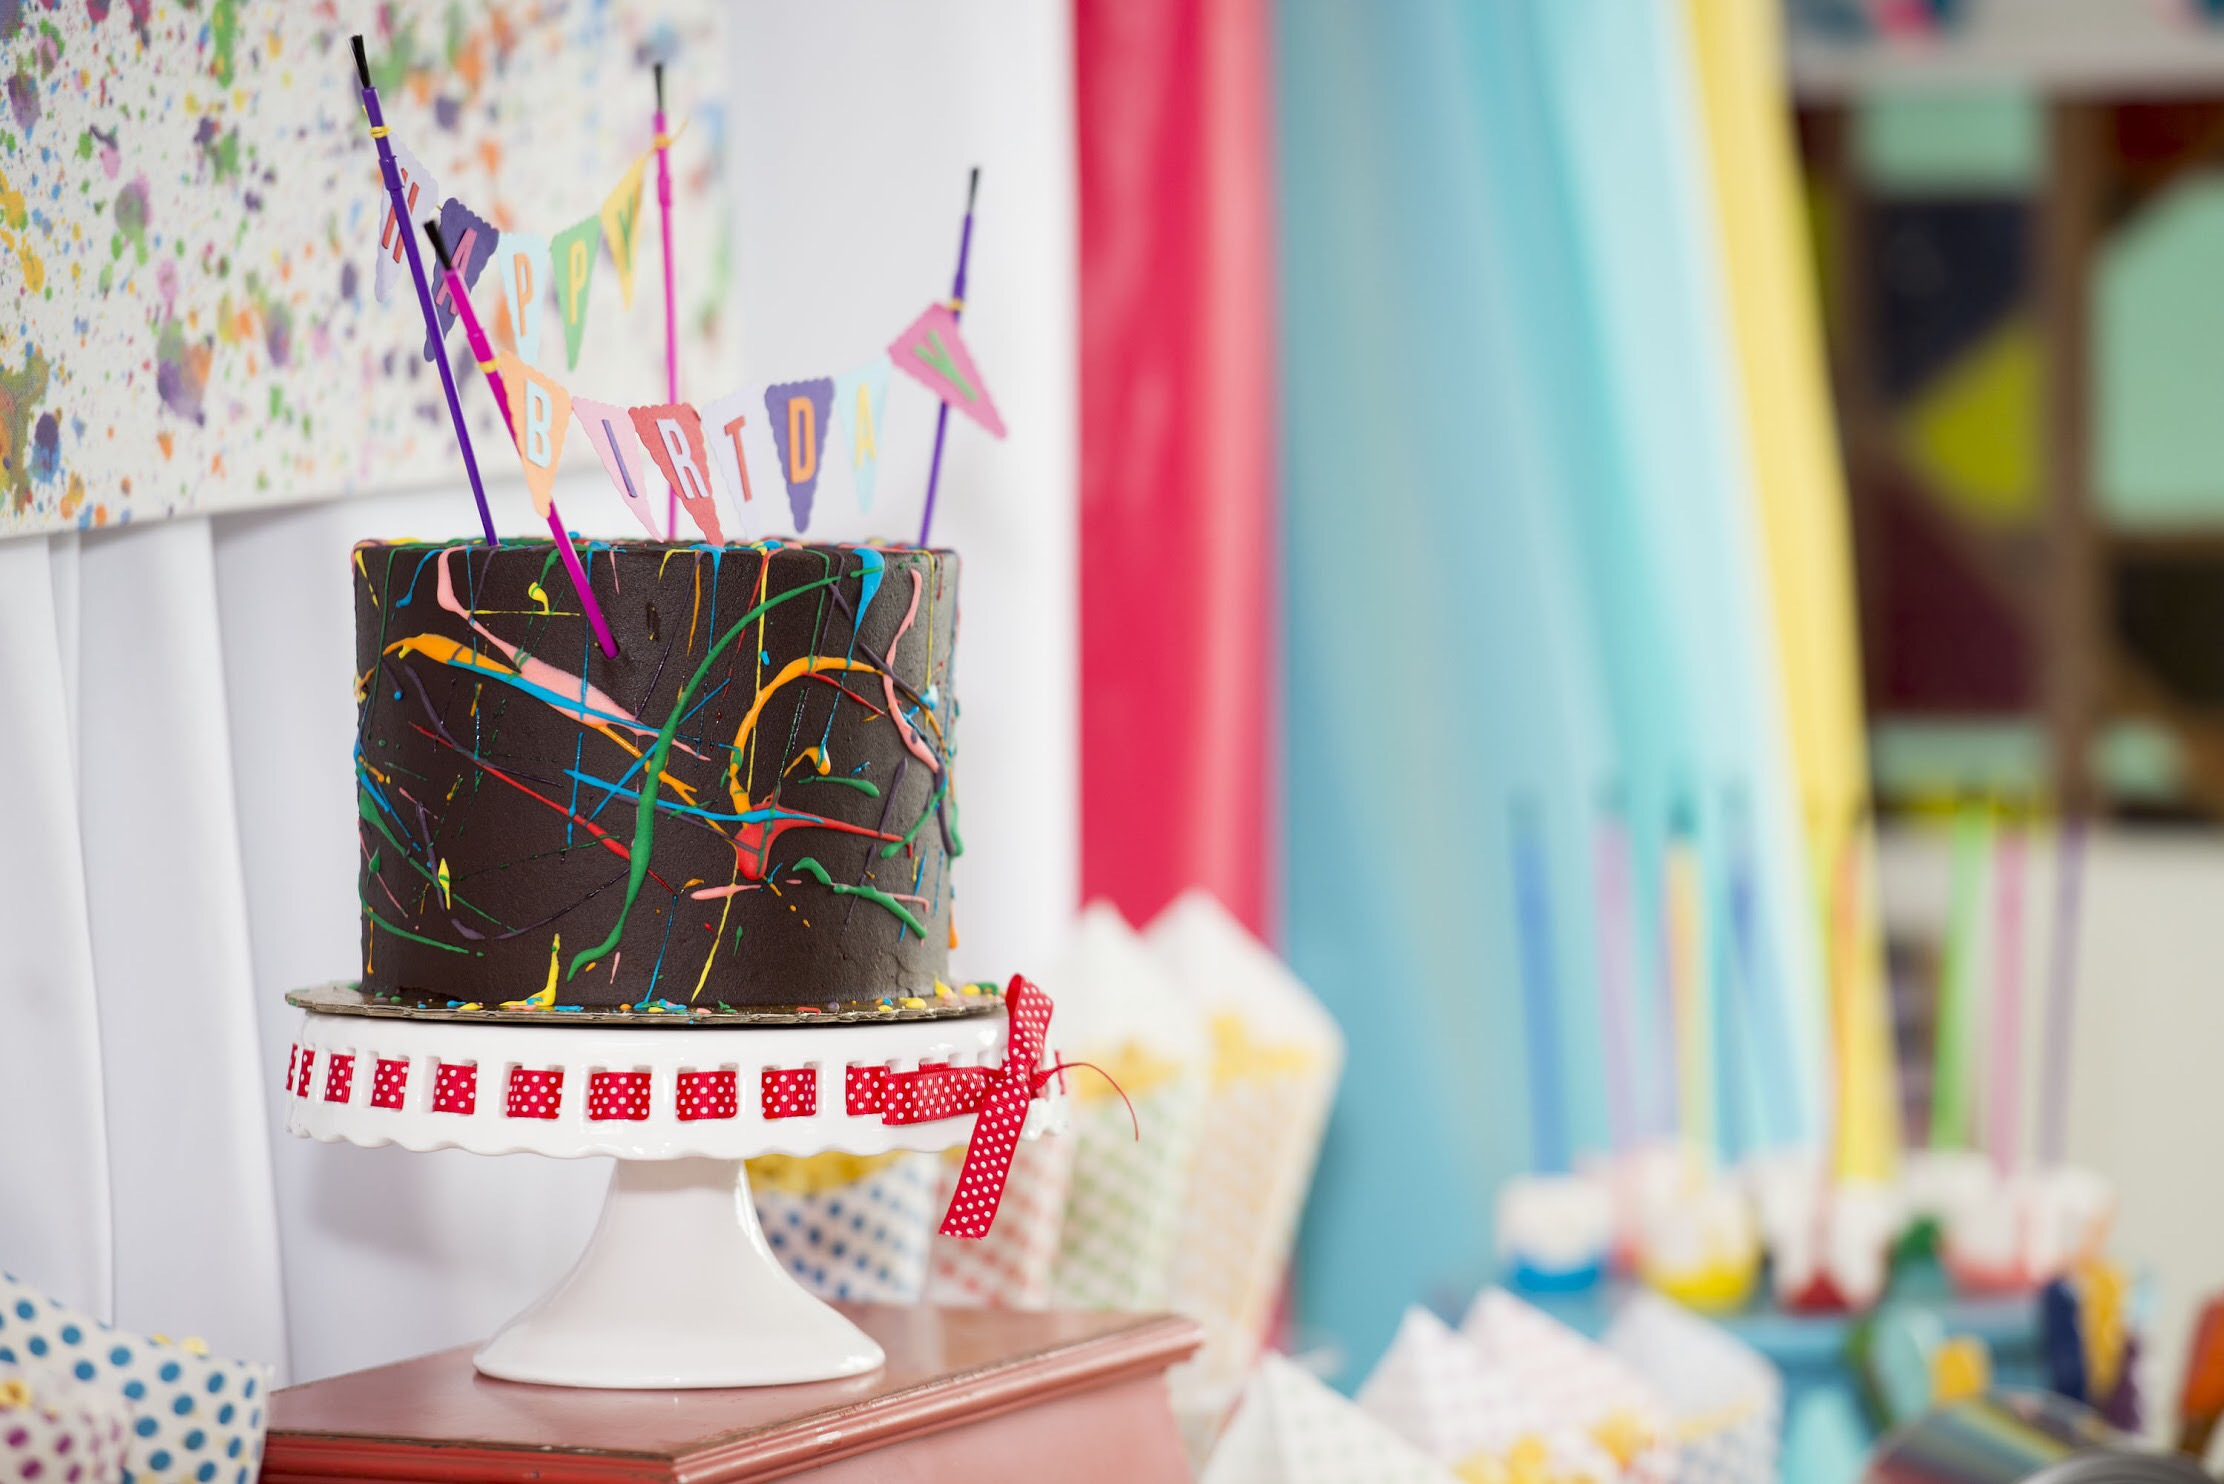 Chocolate brownie cake instead of a traditional white birthday cake. See all the details on how to plan your art party at a local art studio on Mint Event Design www.minteventdesign.com #kidsparty #kidspartyideas #birthdaypartyideas #artparty #rainbowparty #birthdaycake #partydessert